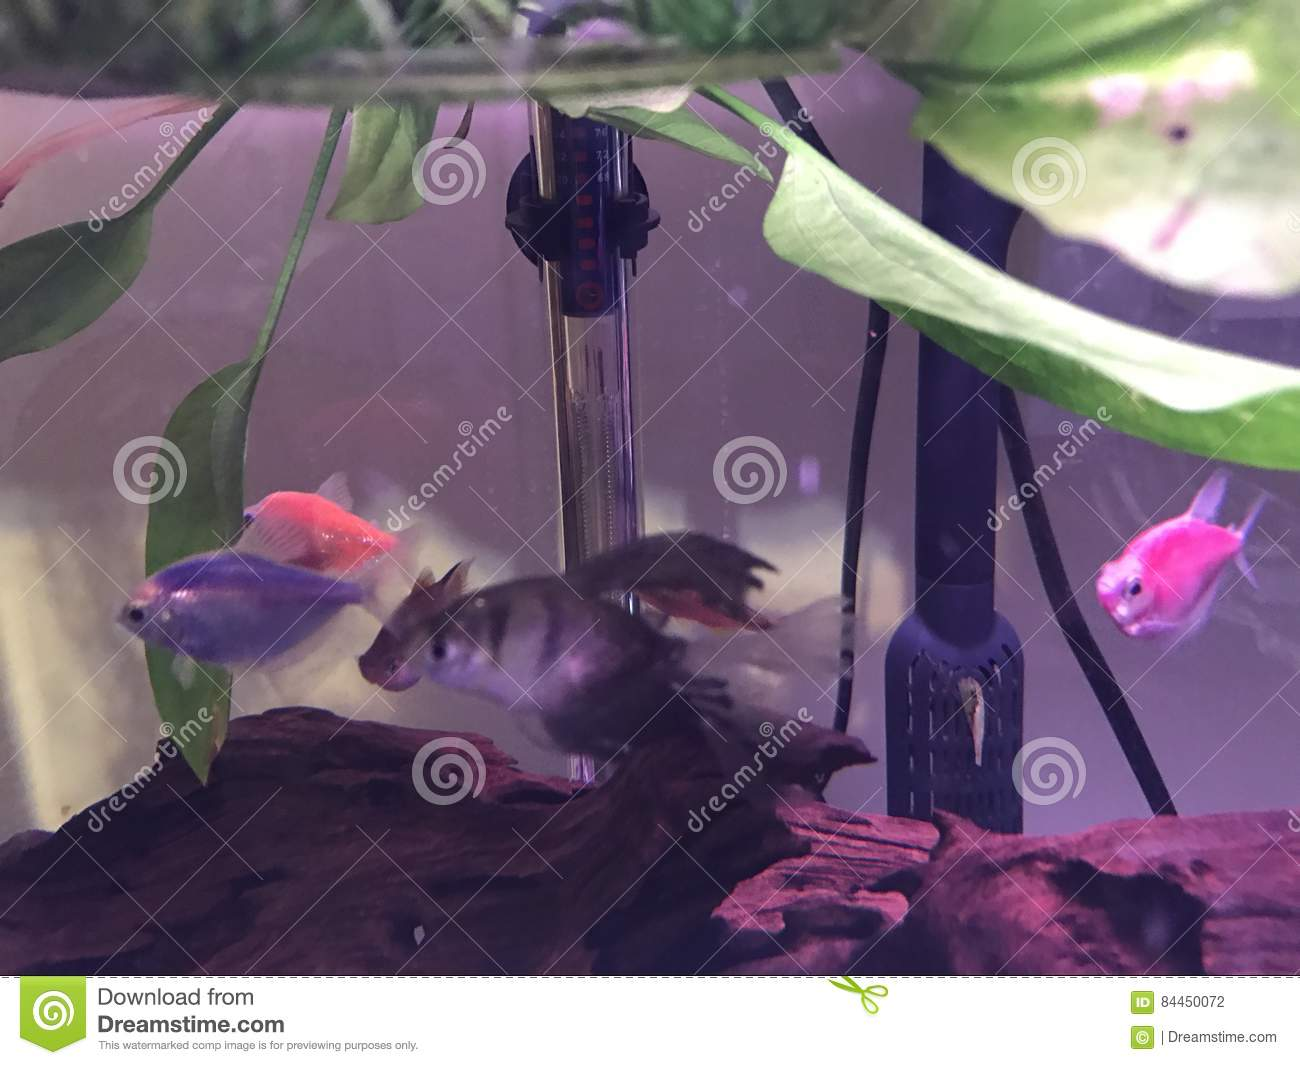 Tetras in the tank